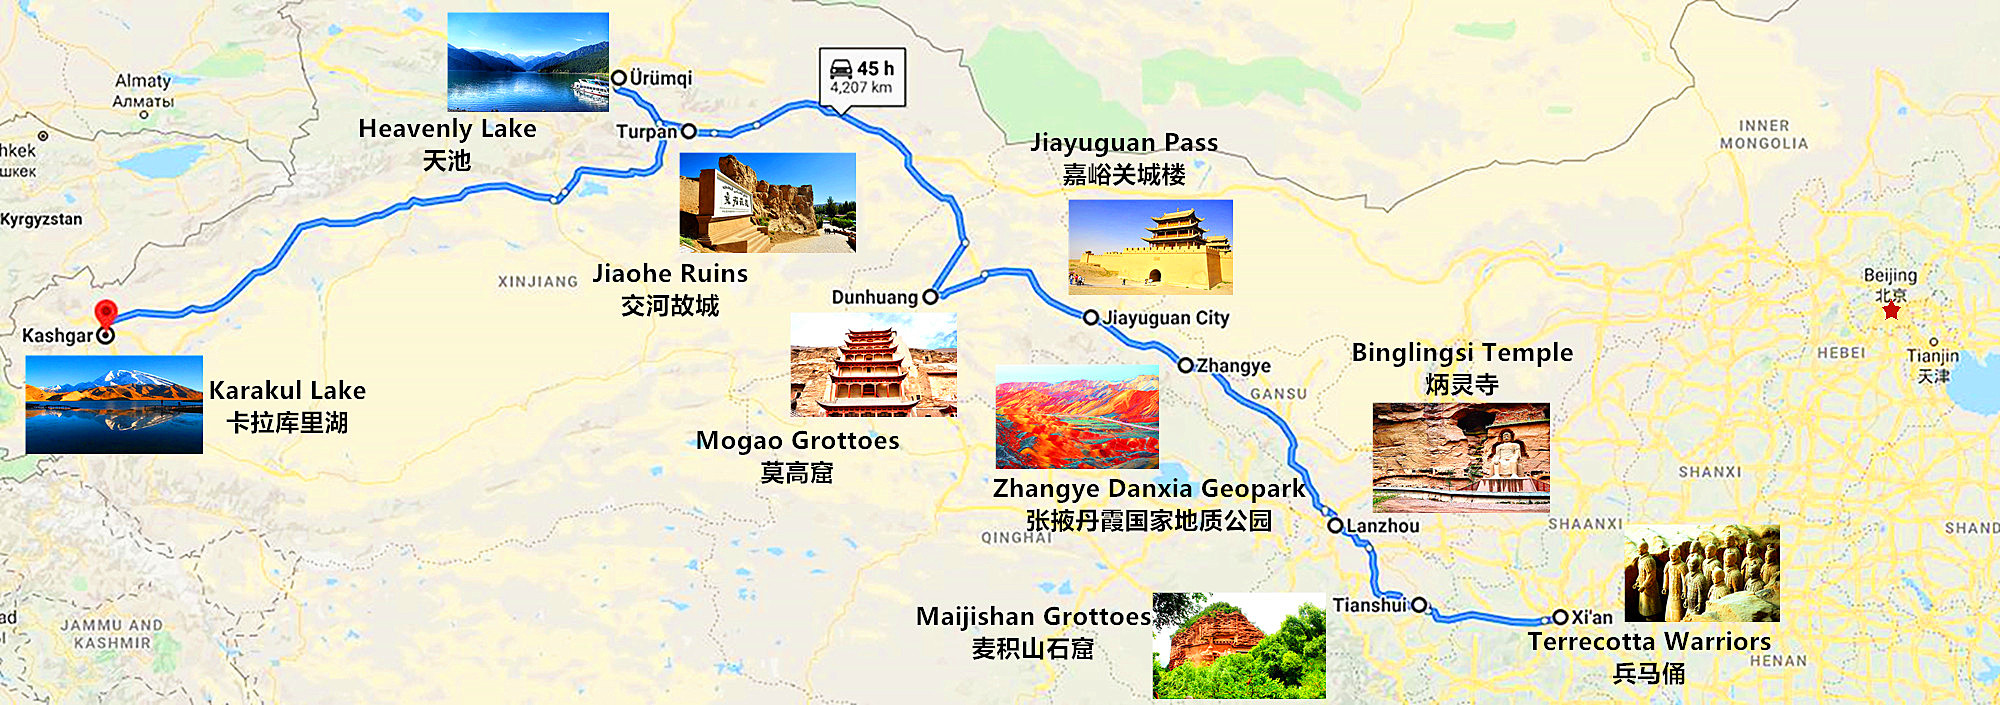 silk road top attraction